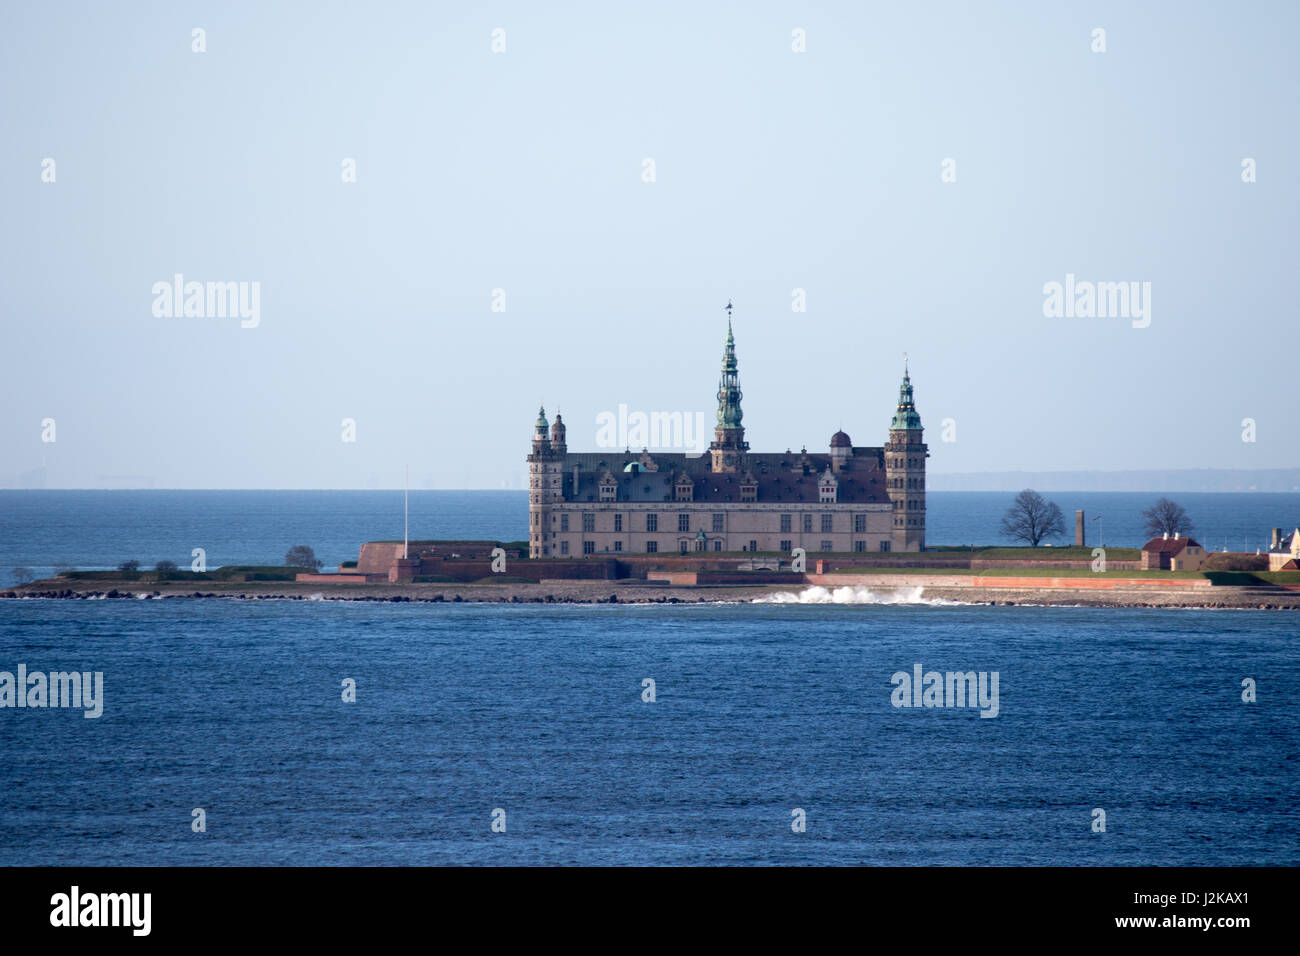 Kronborg castle in Helsingor, Denmark. Seen from the sea. - Stock Image